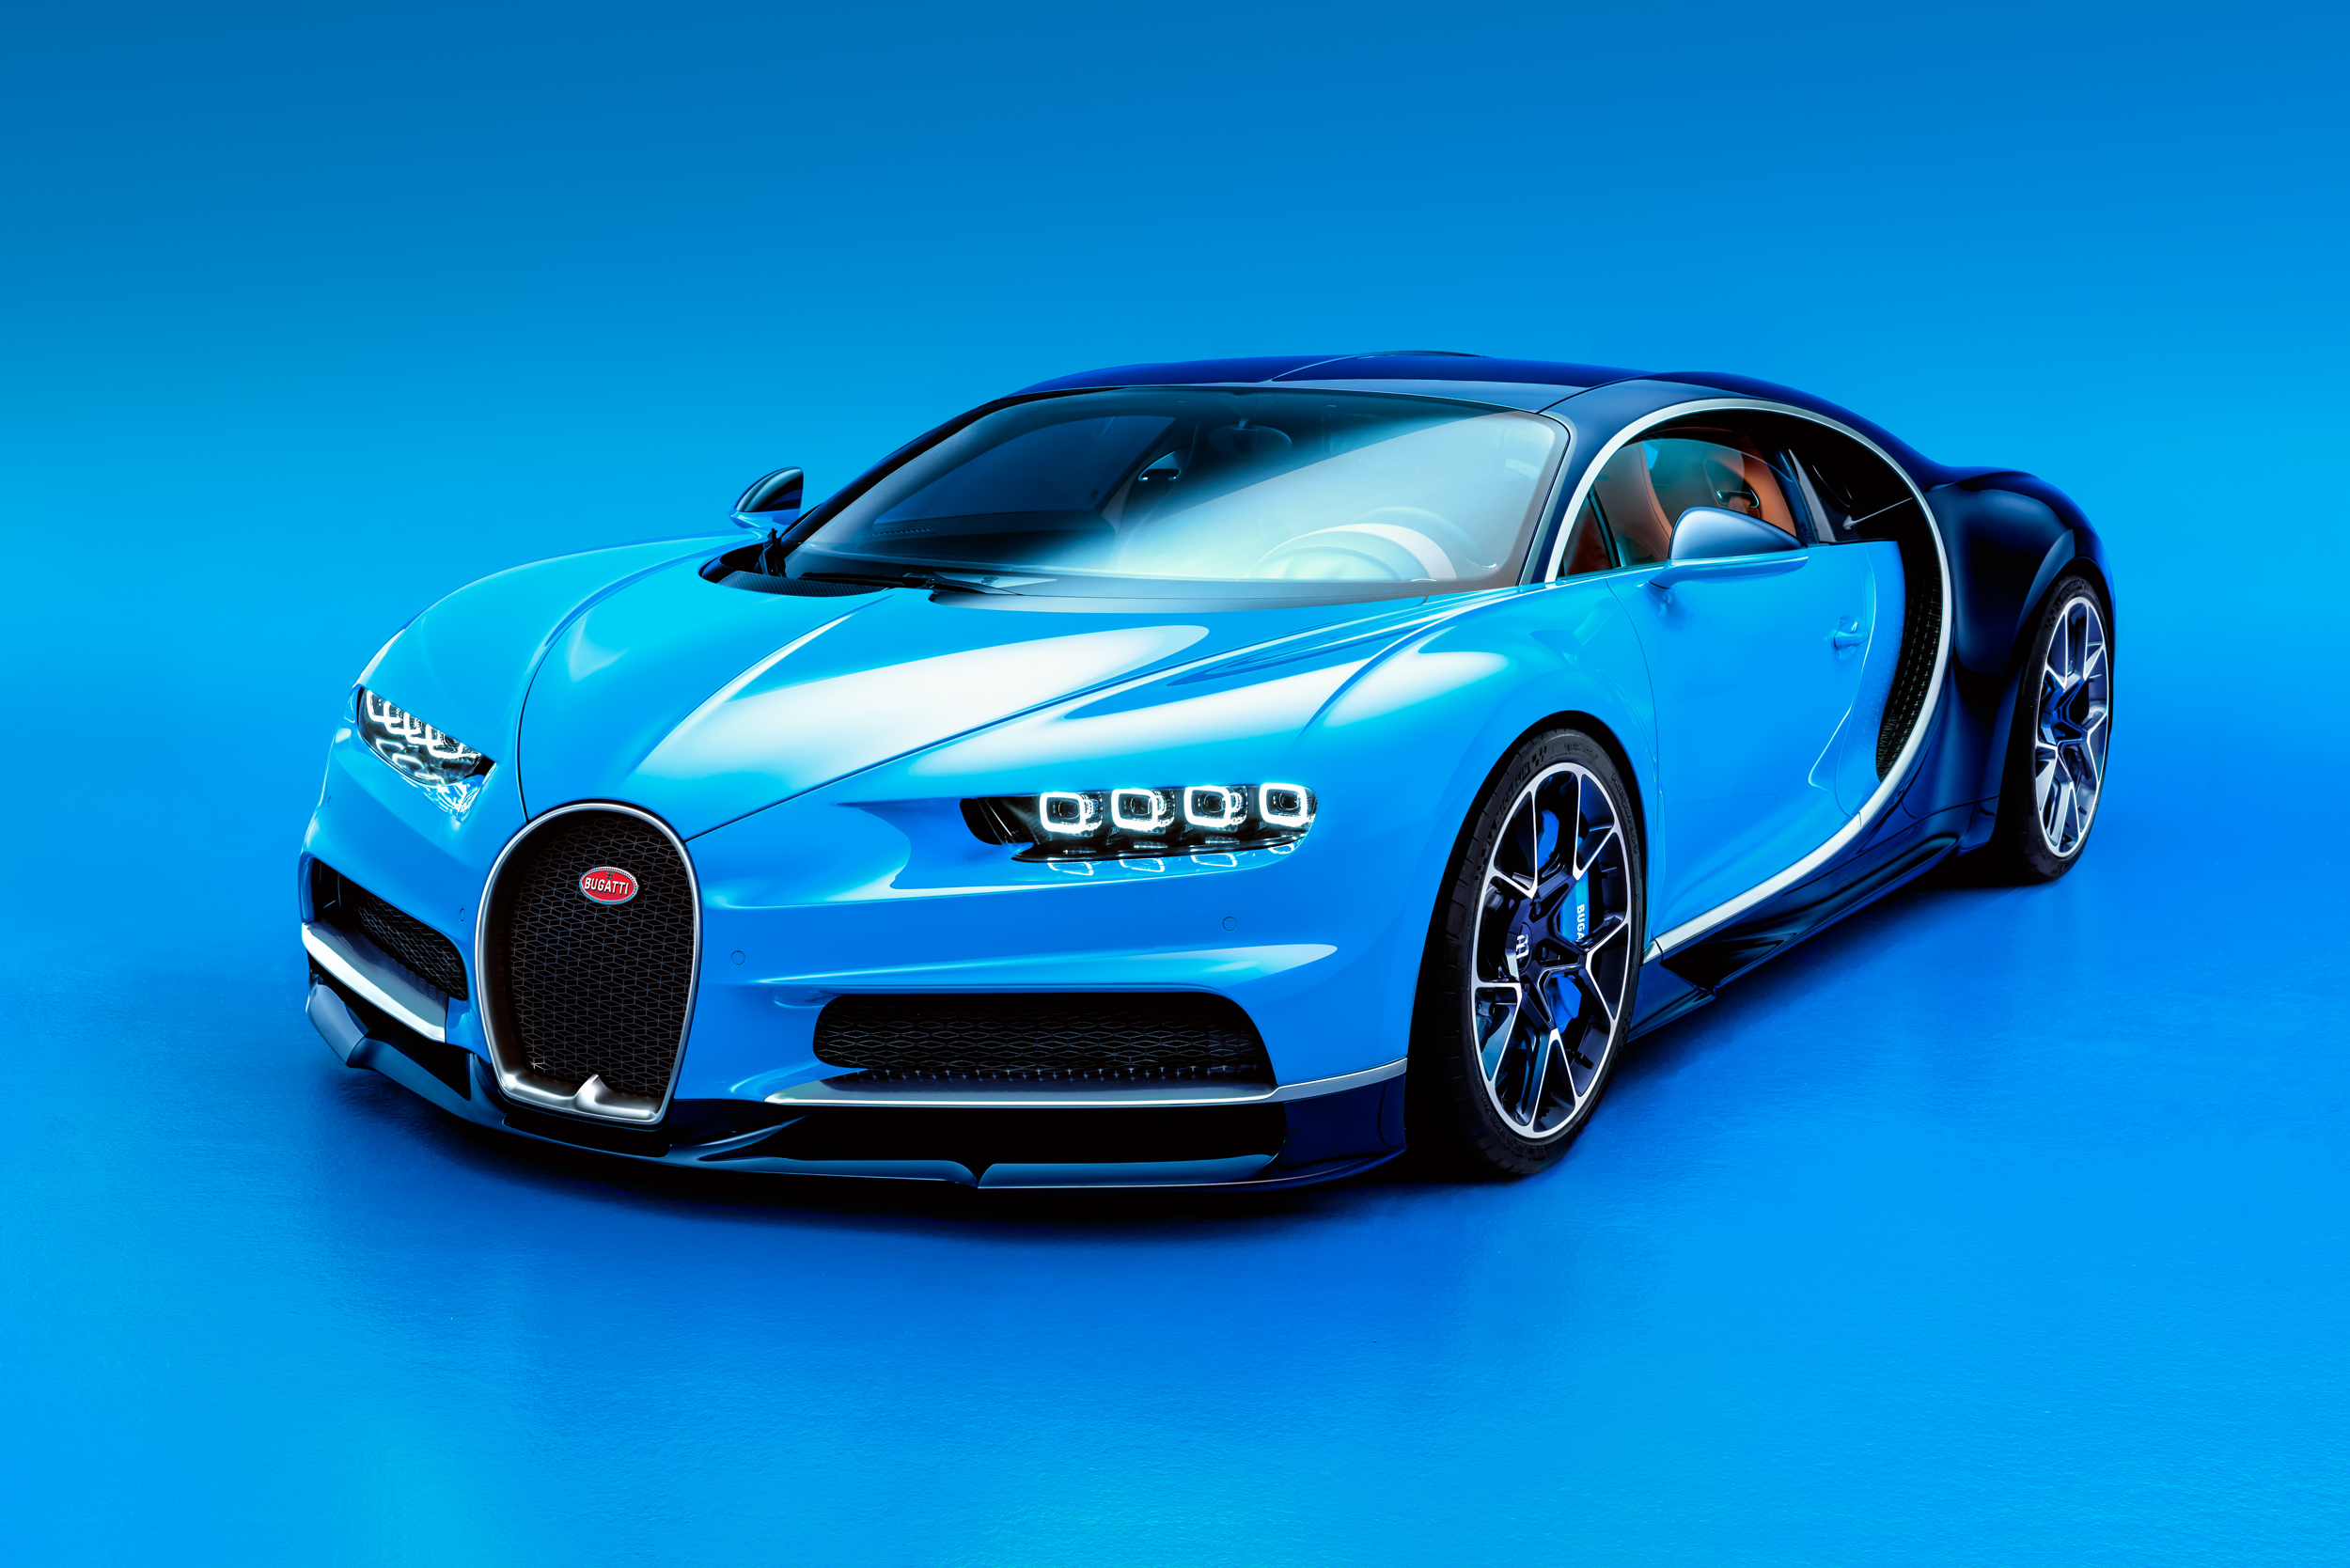 Bugatti's $2.6 million supercar has diamonds in the speakers - The Verge